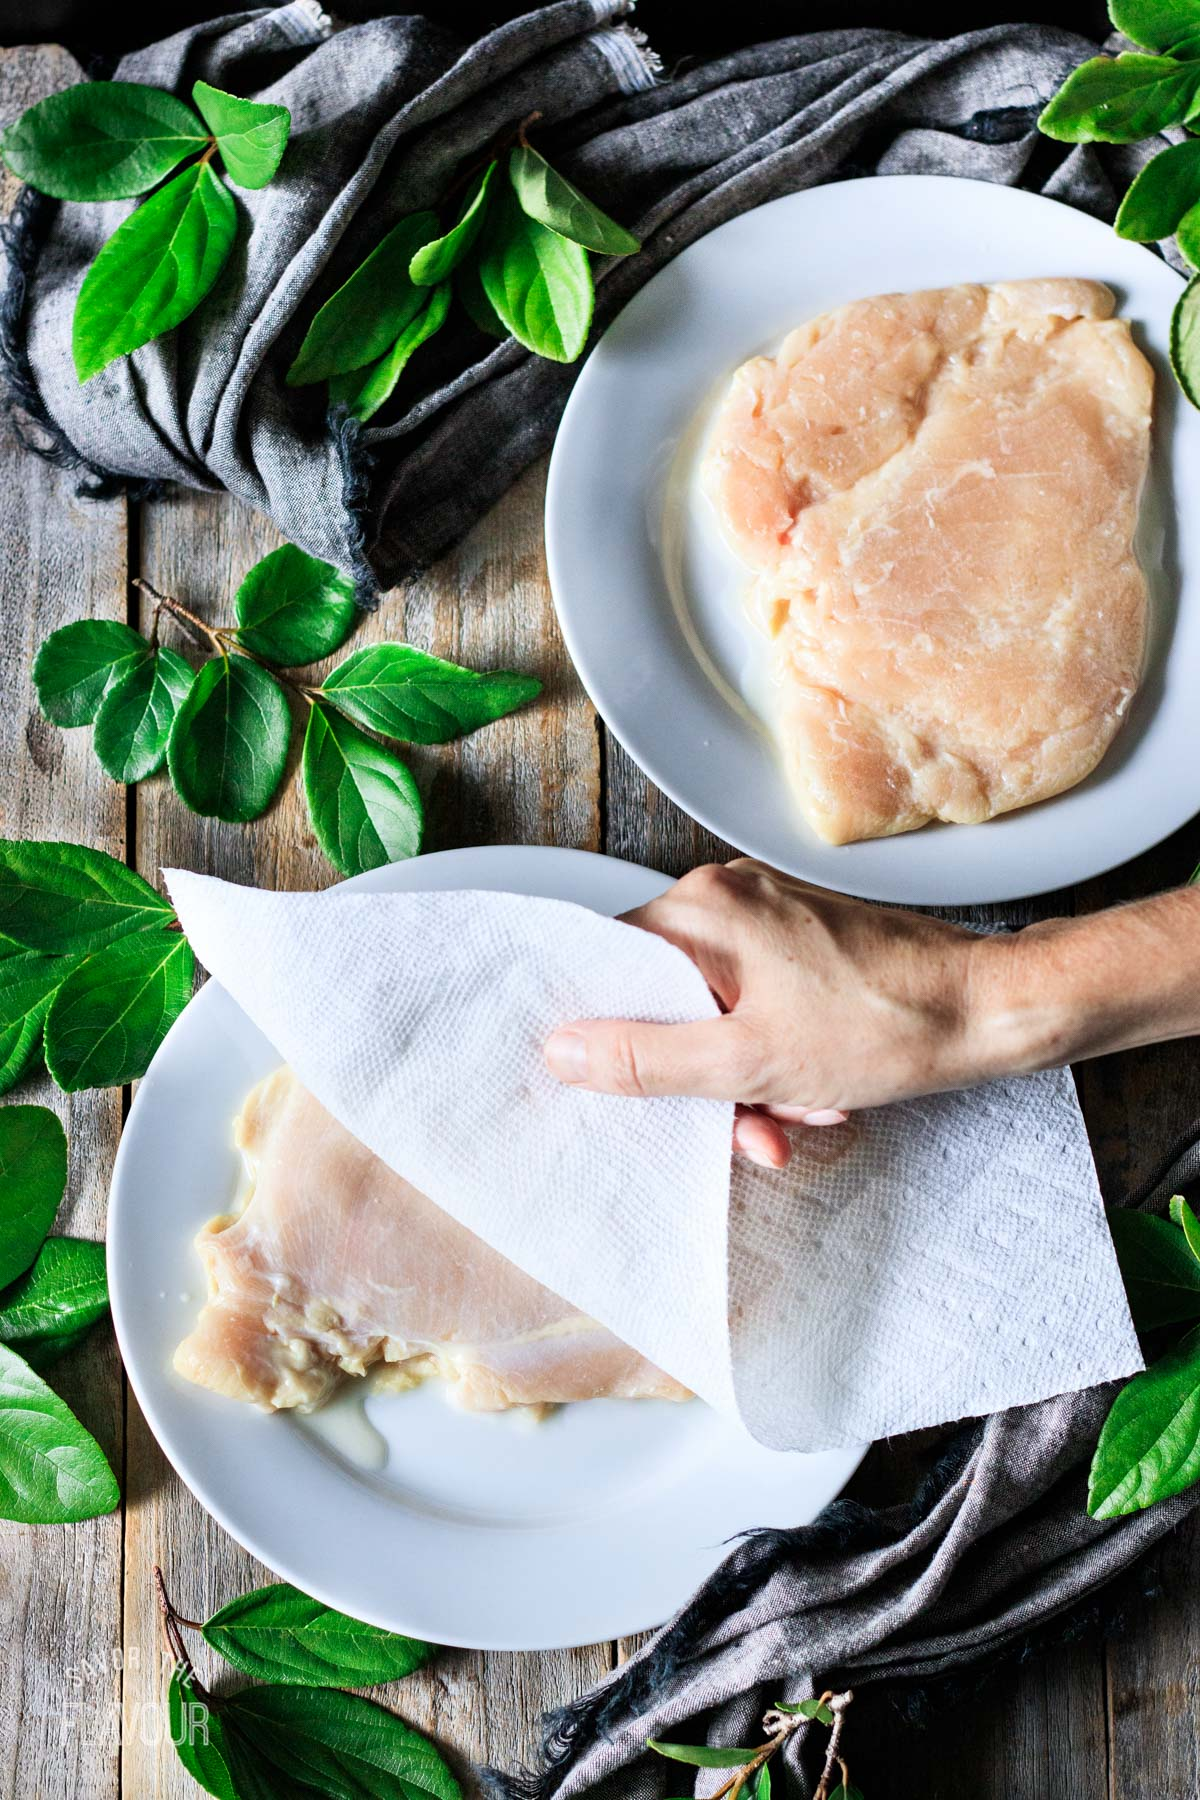 person patting dry chicken breasts with paper towel